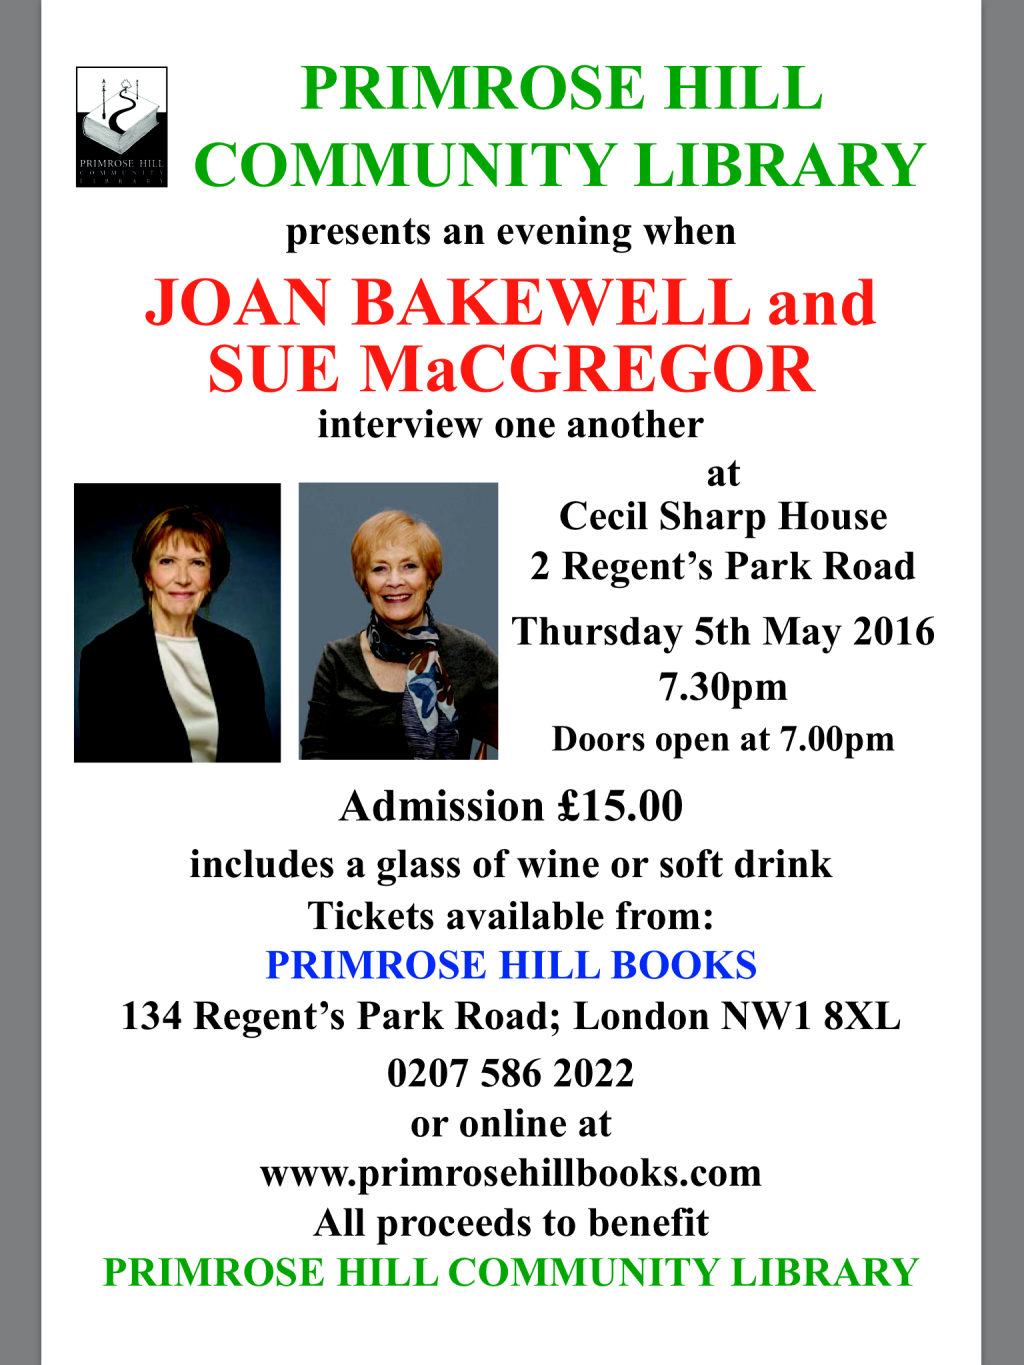 JOAN BAKEWELL AND SUE MacGREGOR INTERVIEW ONE ANOTHER